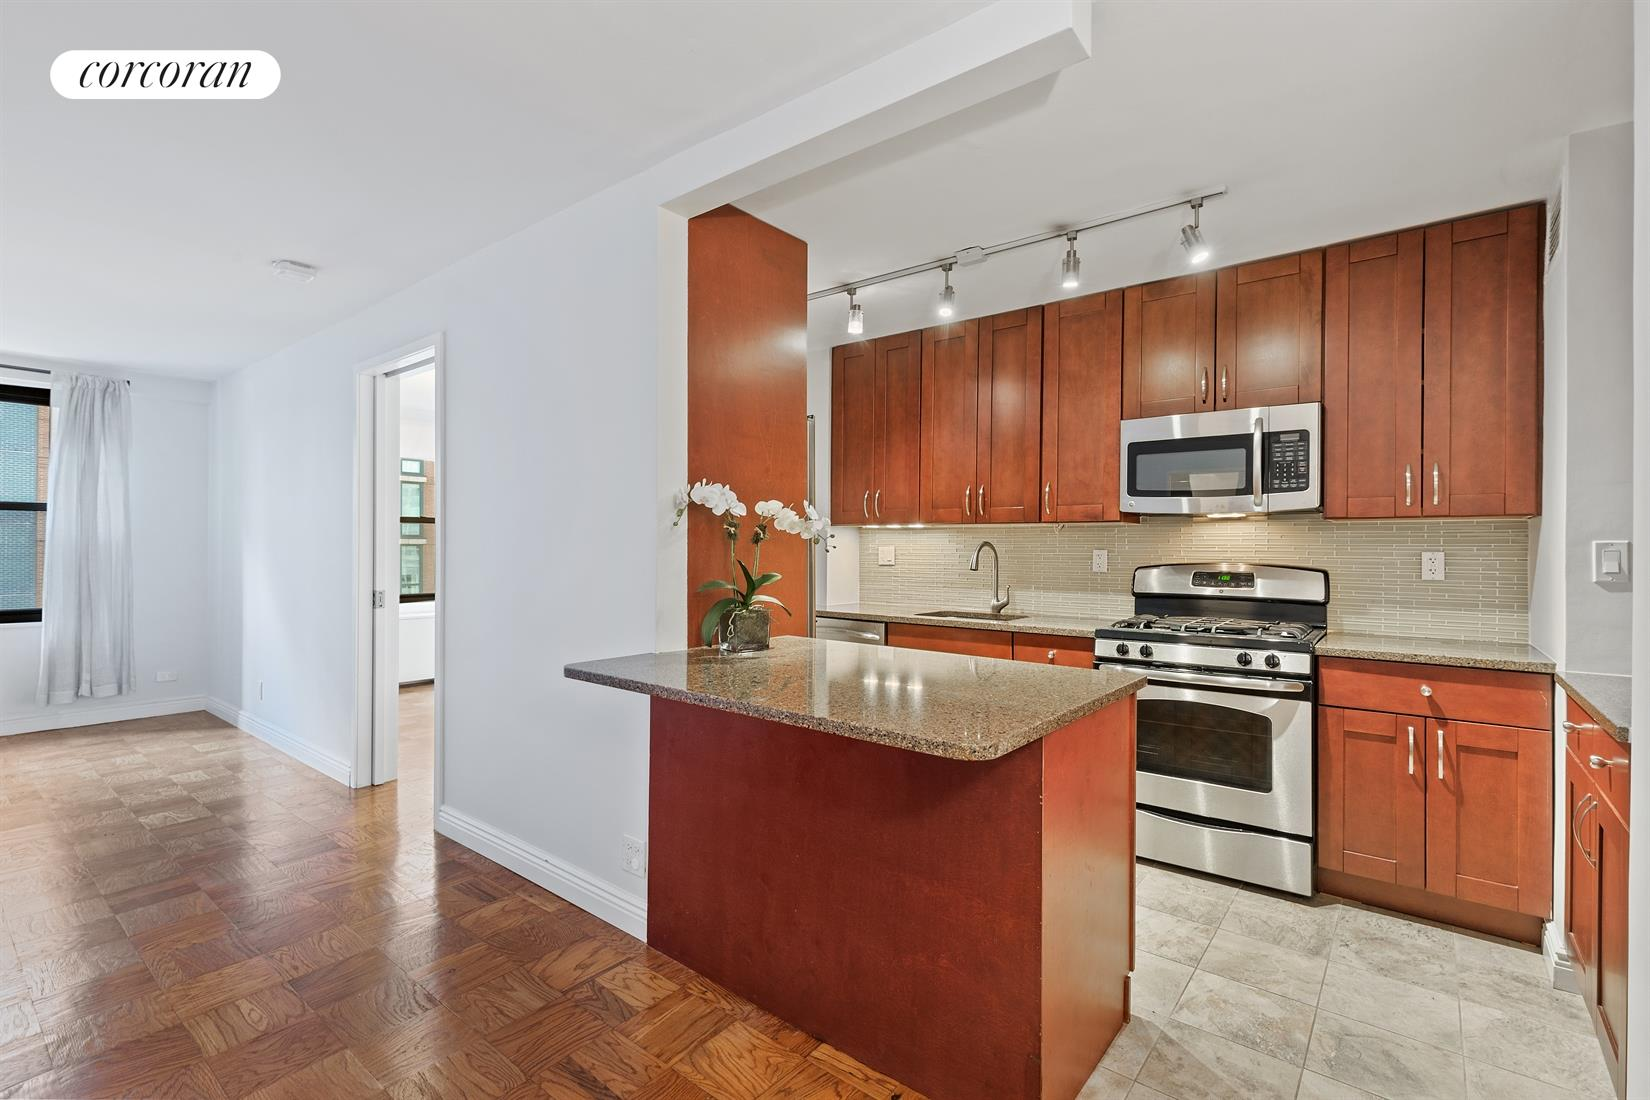 Apartment for sale at 225 East 57th Street, Apt 9F